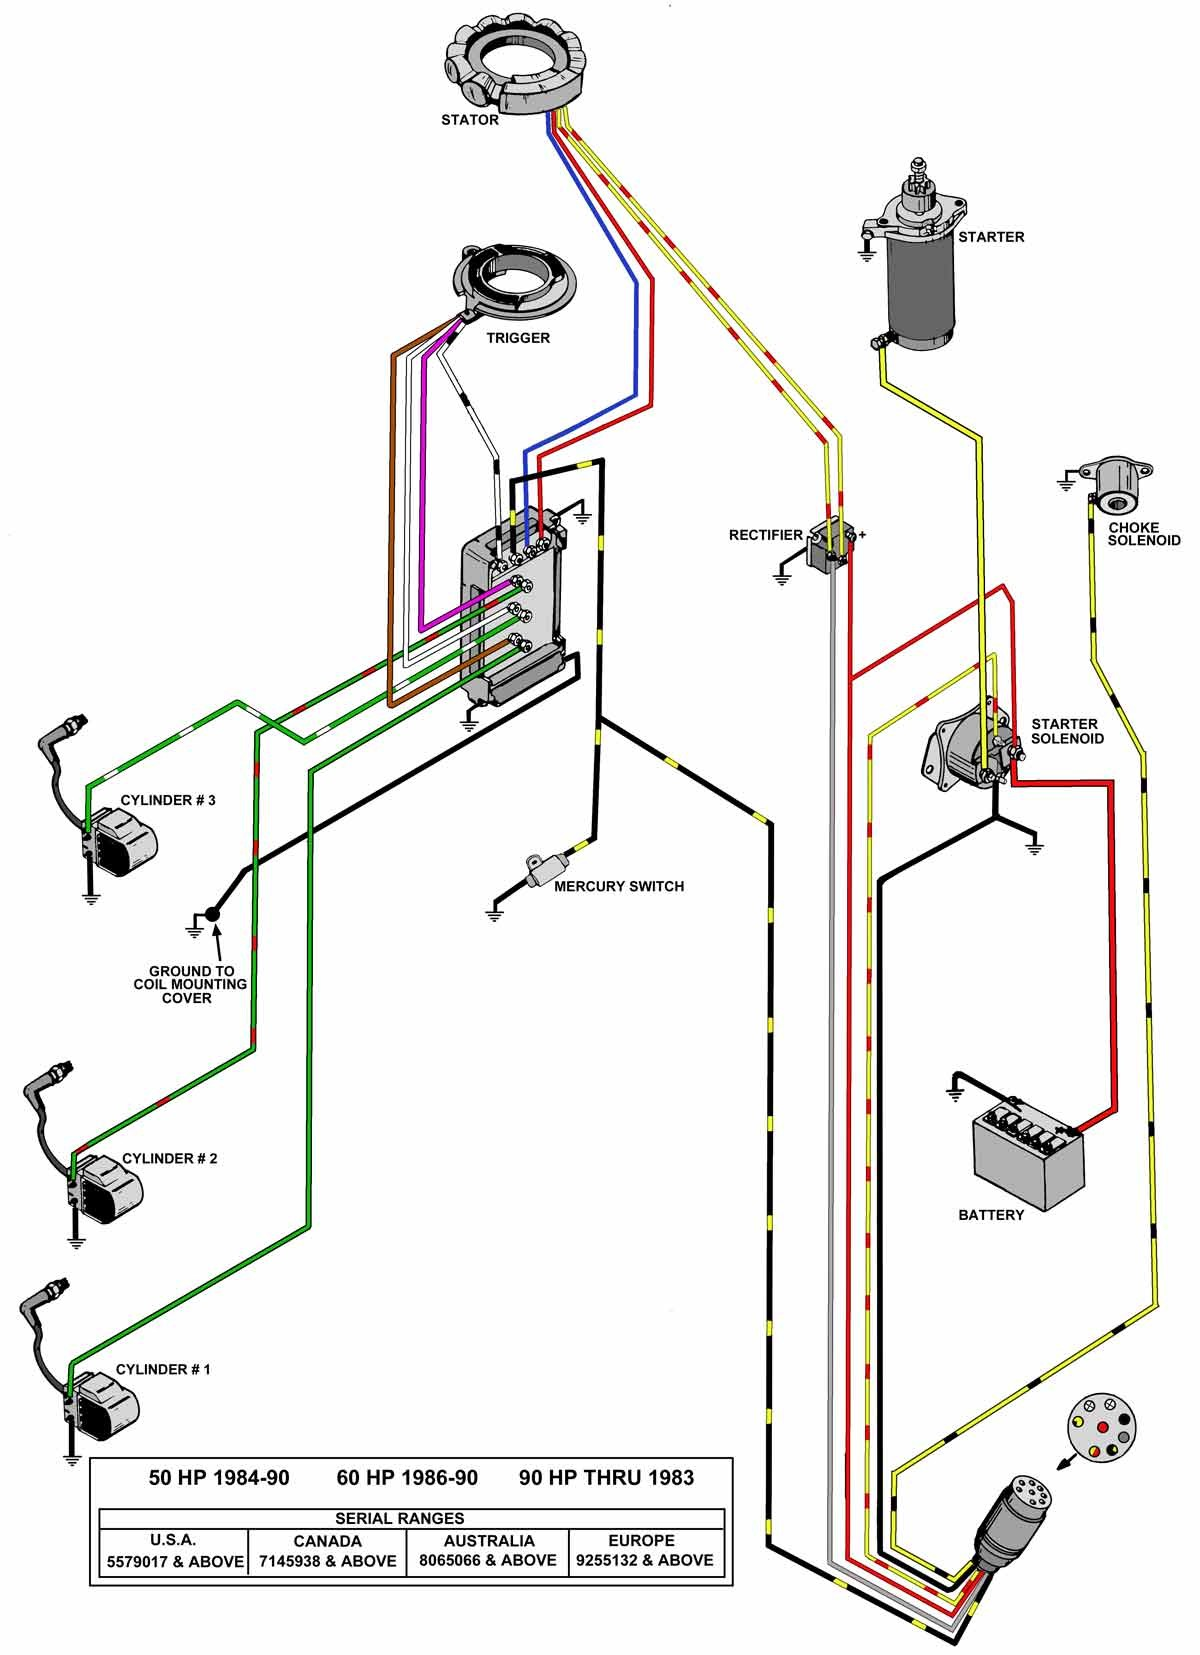 4 3 Mercruiser Engine Diagram 2 Wiring Diagram Mercury 9 9 4 Stroke Daily Update Wiring Of 4 3 Mercruiser Engine Diagram 2 Transmission assembly Stern Drive Mc Ii Tr Serial Range